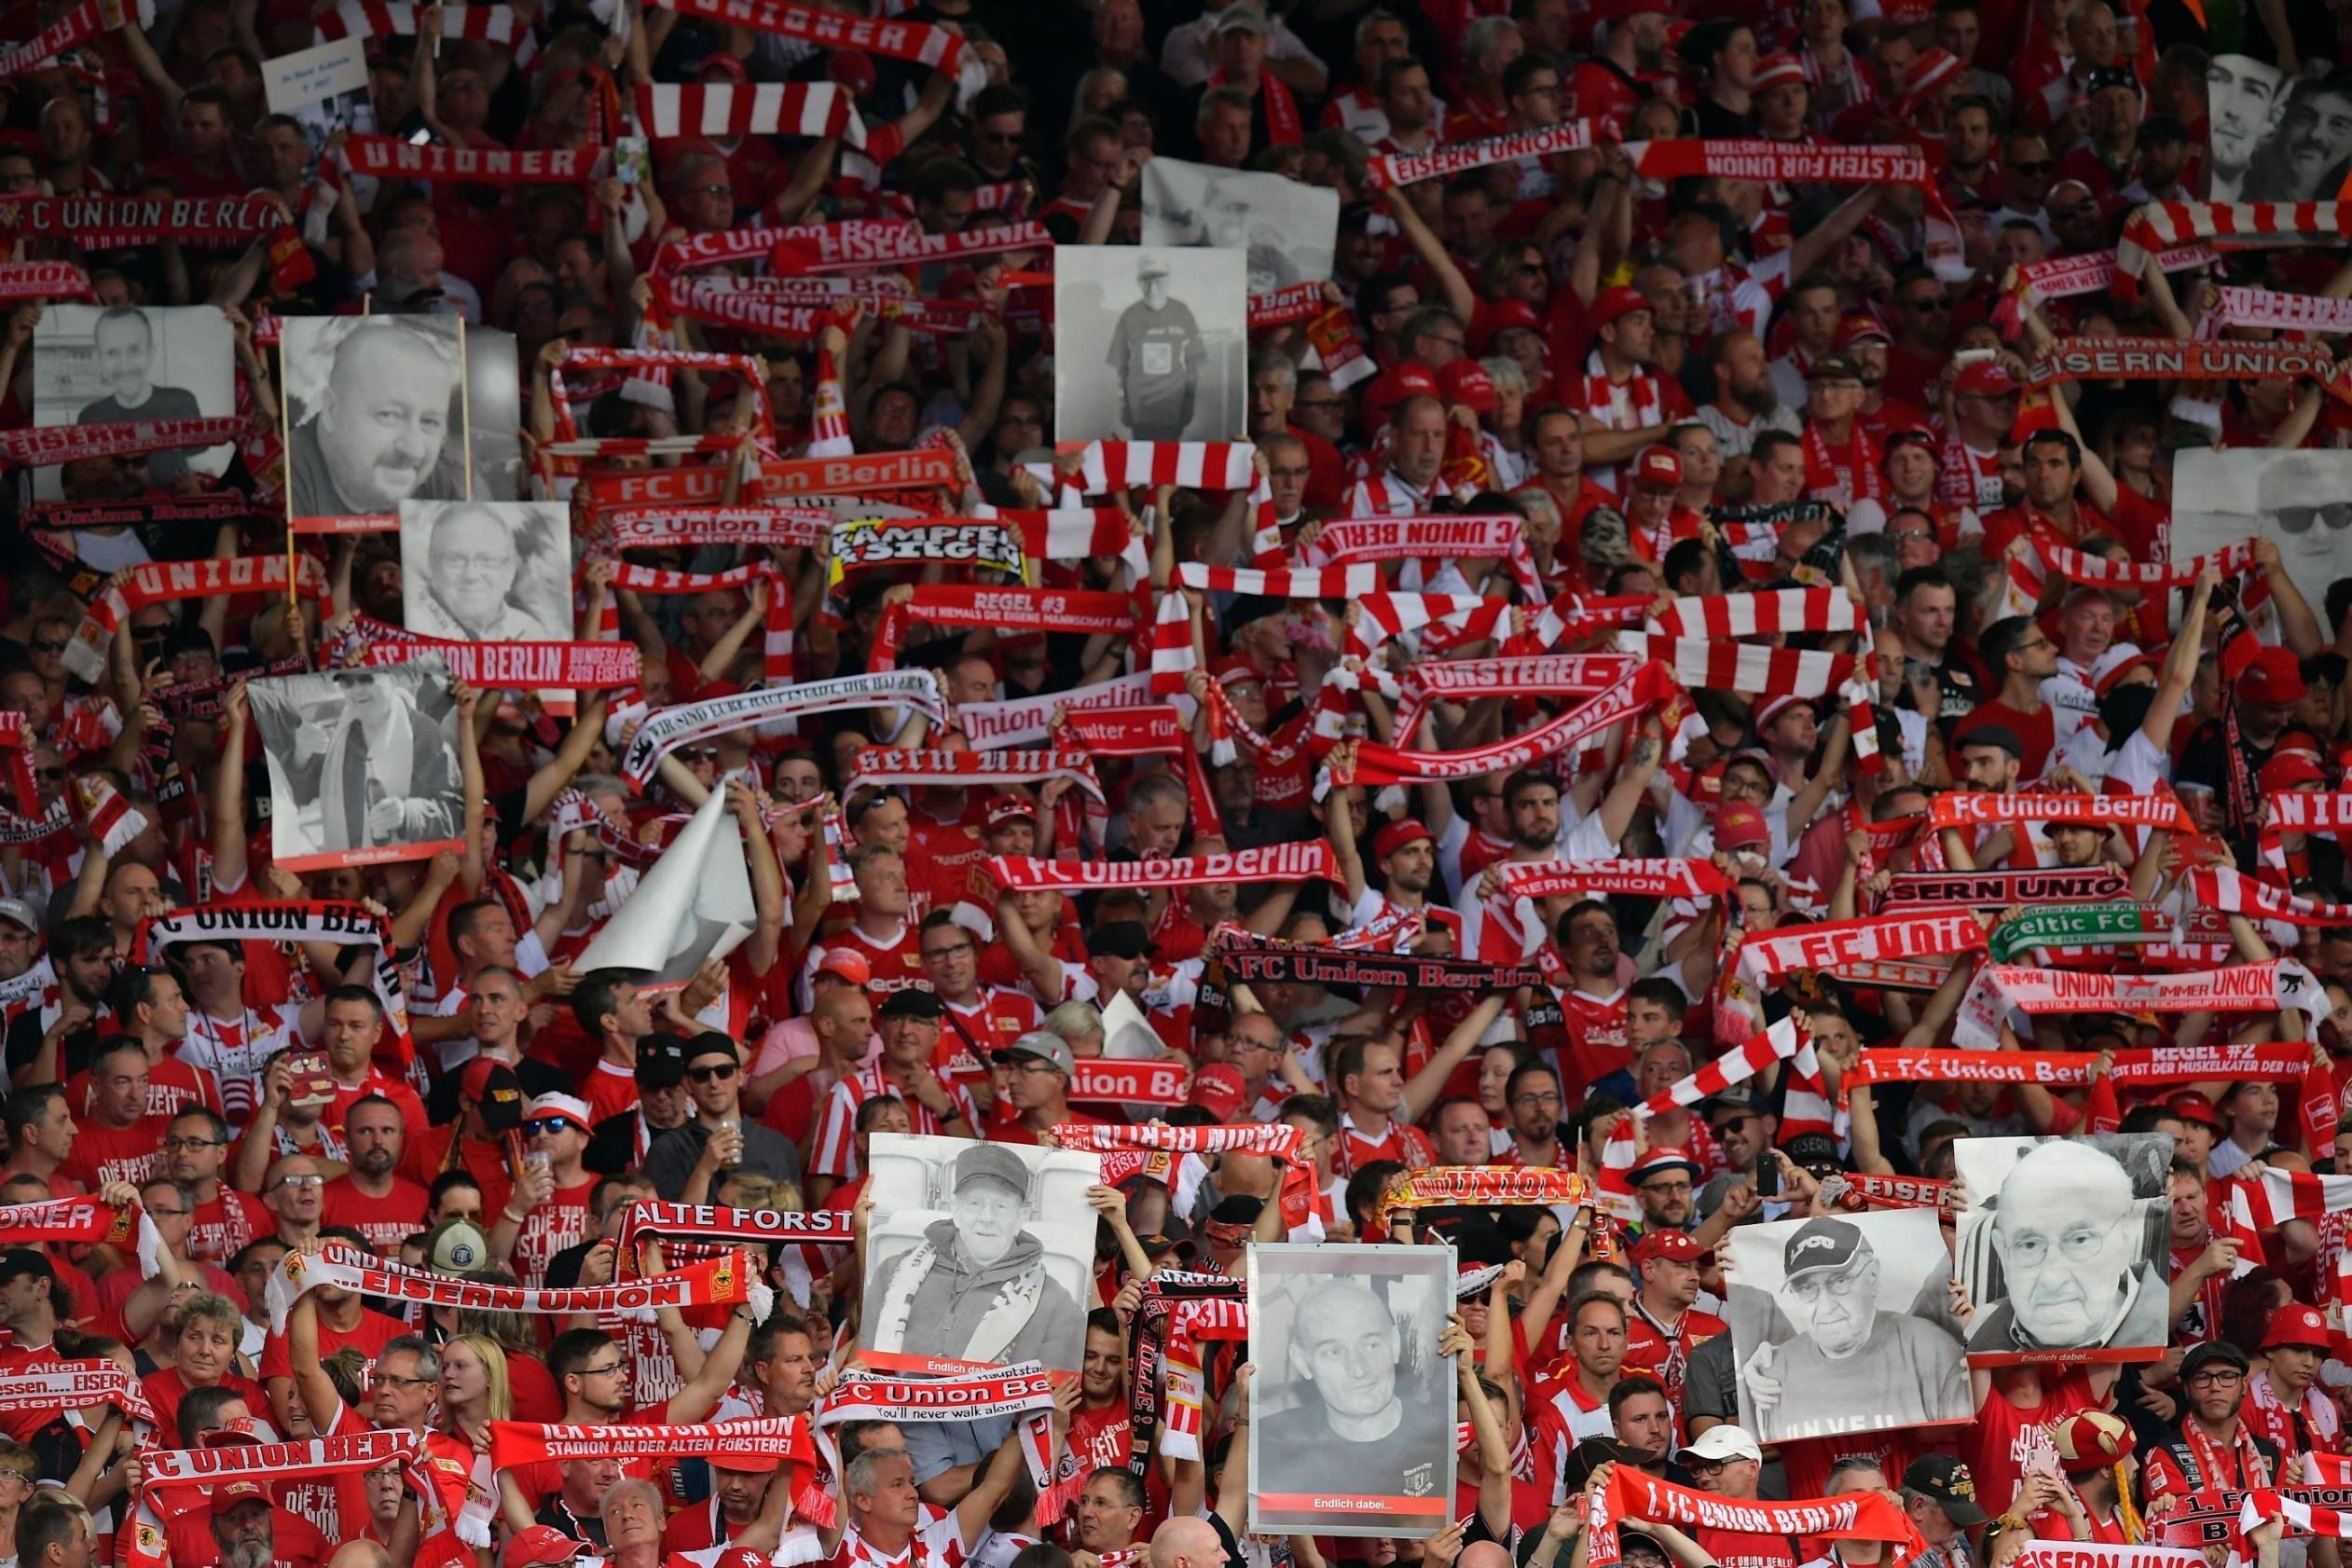 Gone but not forgotten: Union Berlin remembers deceased fans in moving tribute